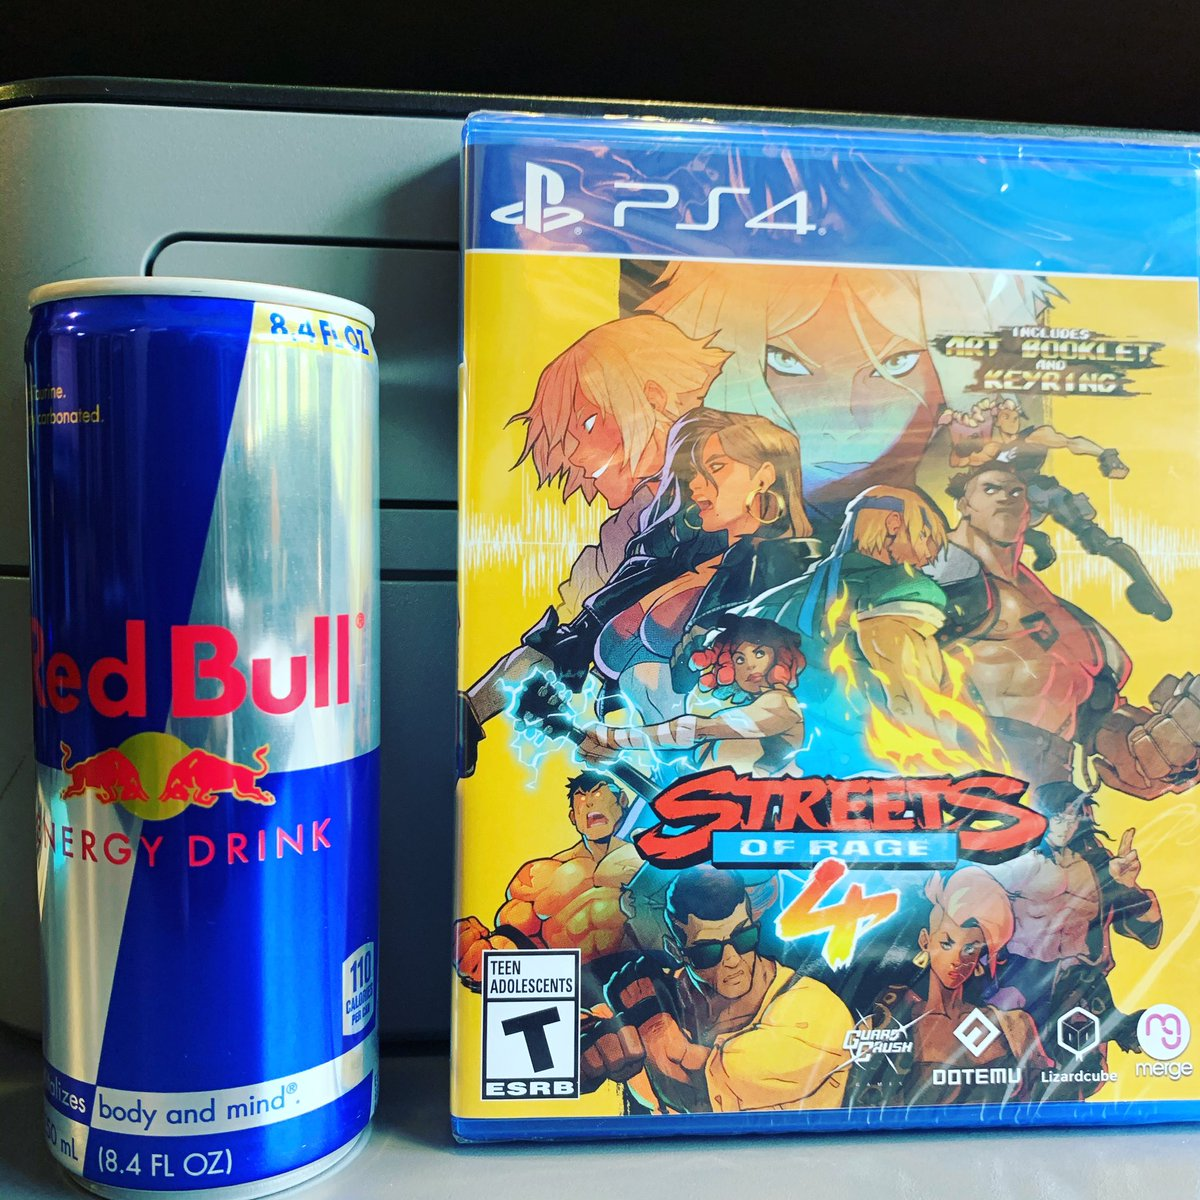 Looks like this weekend I'll be using #redbull to take on #streetsofrage4  I got to pick this up for super cheap and I know one of my friends in particular will get down on this with me. #givesyouwings #ps4 #videogames #oldschool #swag #free #stuff @redbull https://t.co/FsH9iXOLY7